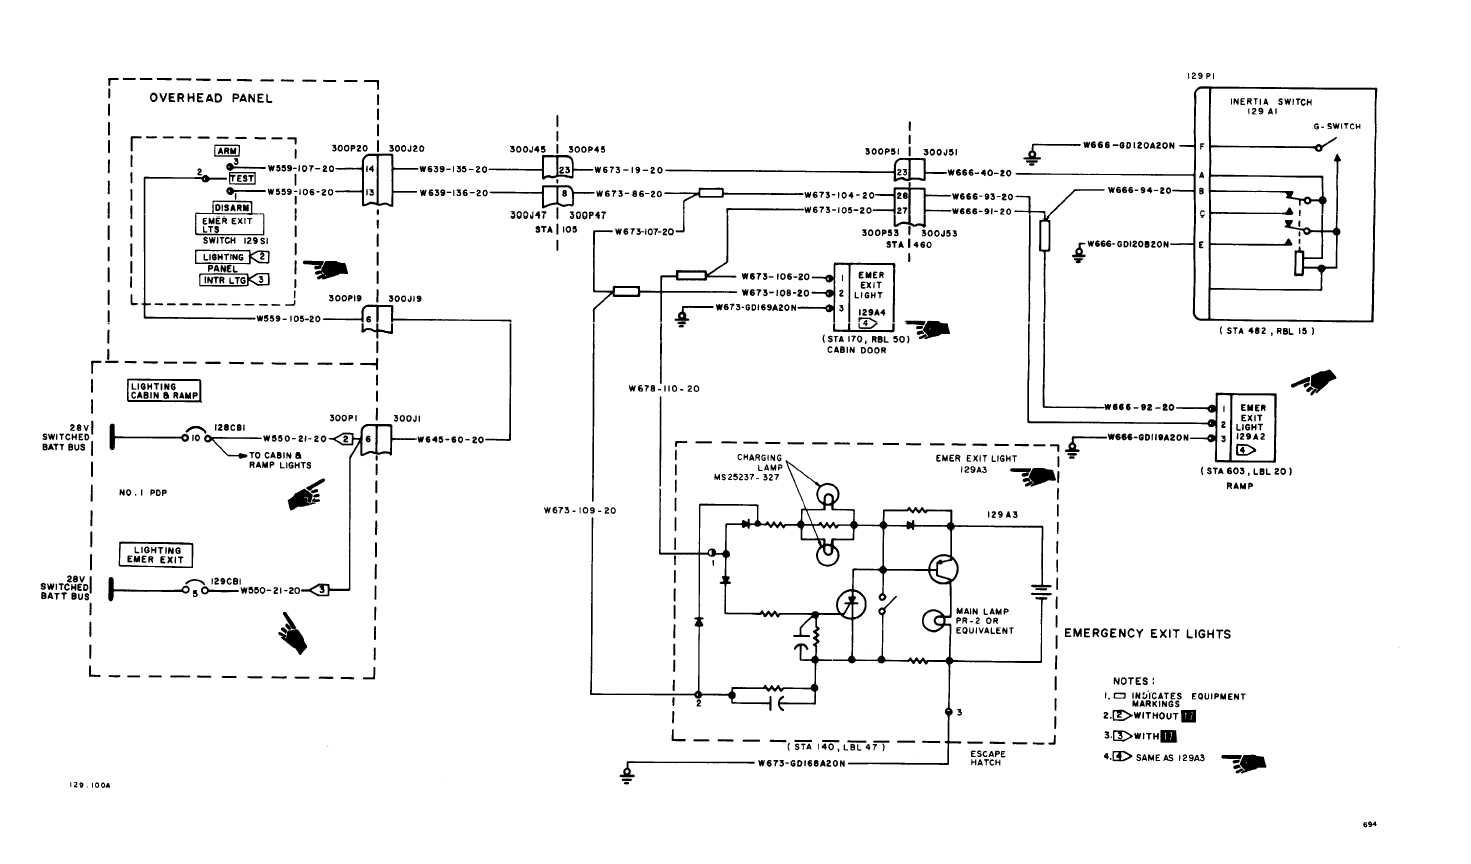 Rh2b Ul Wiring Diagram | Wiring Liry Ul Wiring Diagram on engine diagrams, internet of things diagrams, electrical diagrams, hvac diagrams, pinout diagrams, transformer diagrams, series and parallel circuits diagrams, smart car diagrams, electronic circuit diagrams, motor diagrams, troubleshooting diagrams, sincgars radio configurations diagrams, friendship bracelet diagrams, battery diagrams, honda motorcycle repair diagrams, led circuit diagrams, gmc fuse box diagrams, lighting diagrams, switch diagrams,